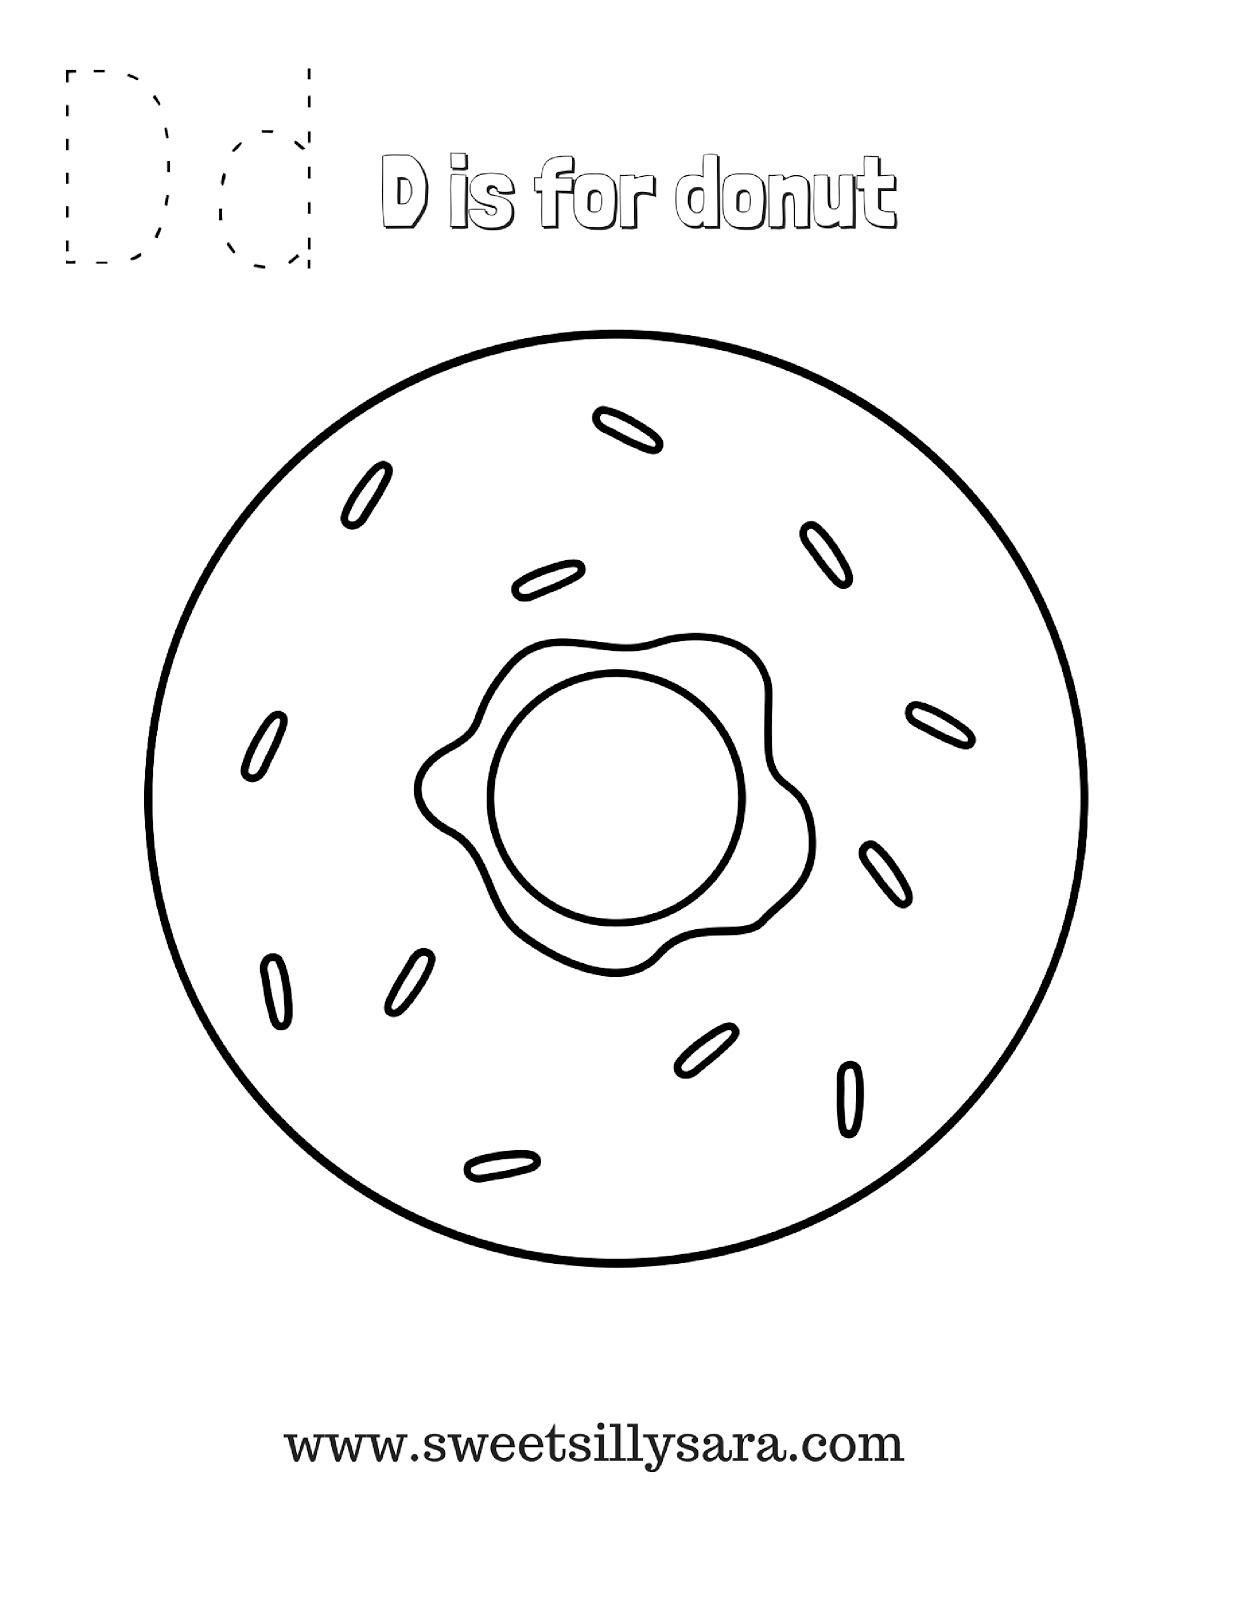 Sweet Silly Sara: D is for Donut Coloring Page